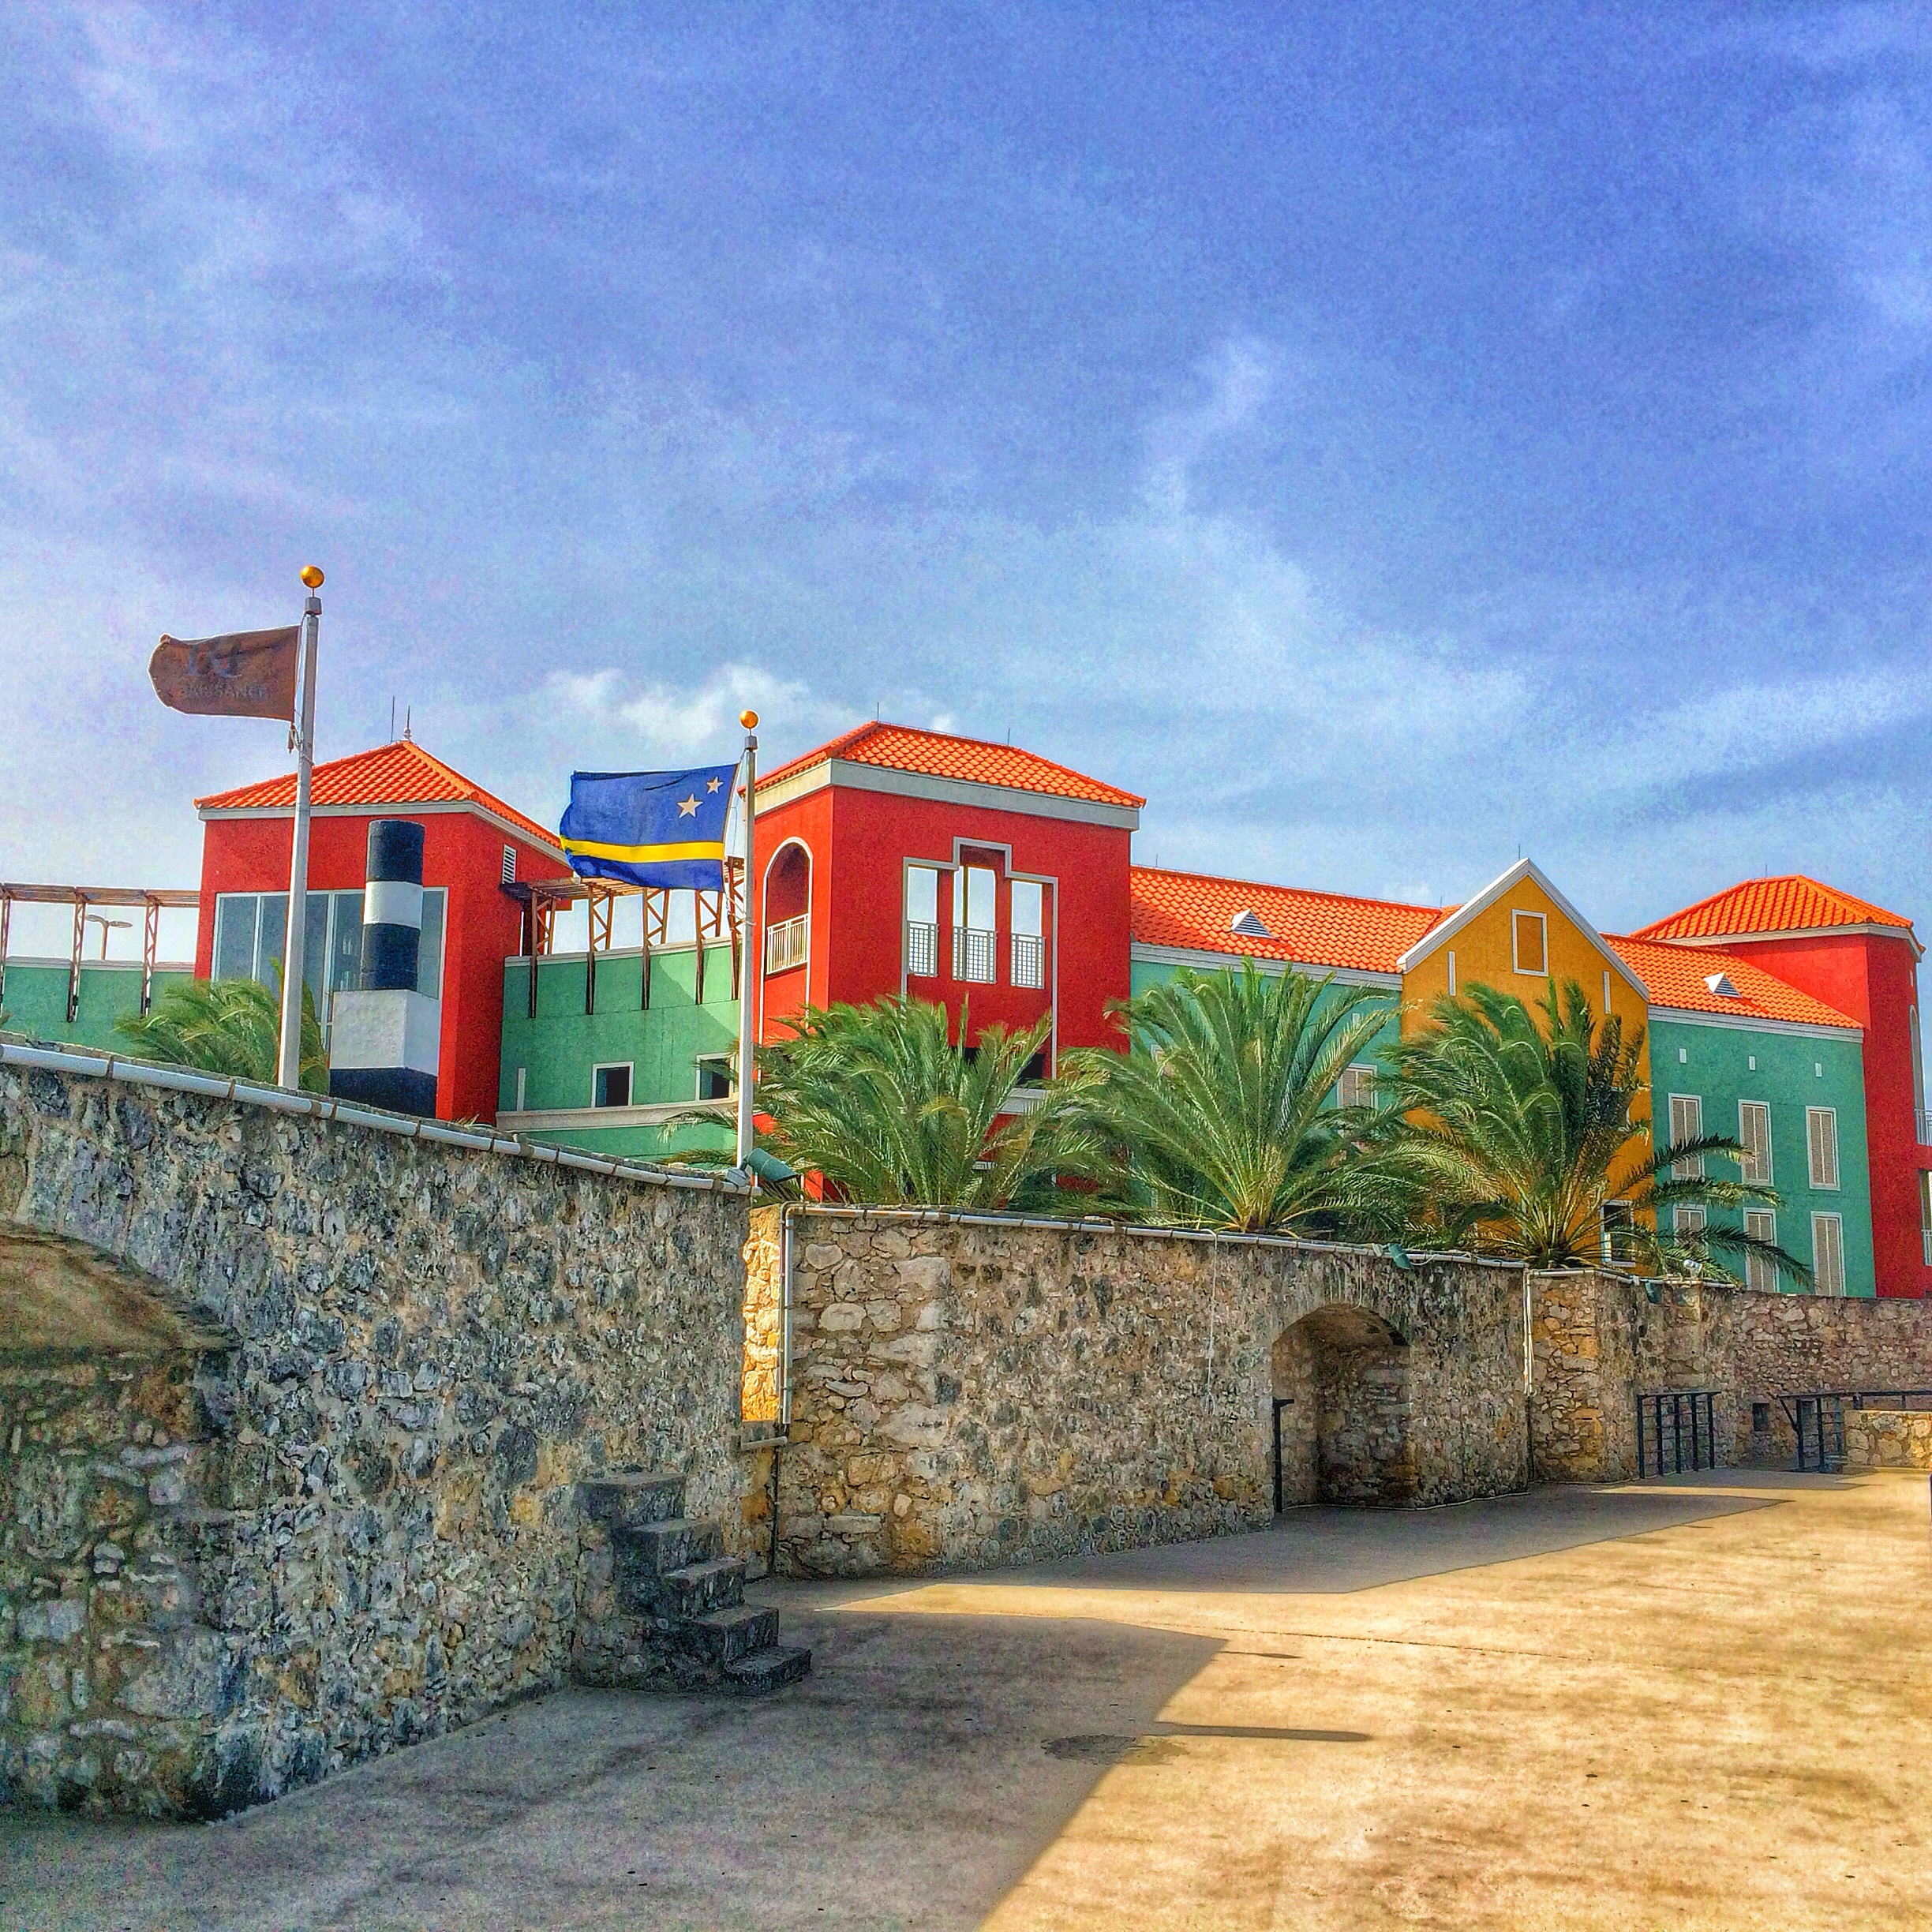 Rif Fort Rooftop - Curacao